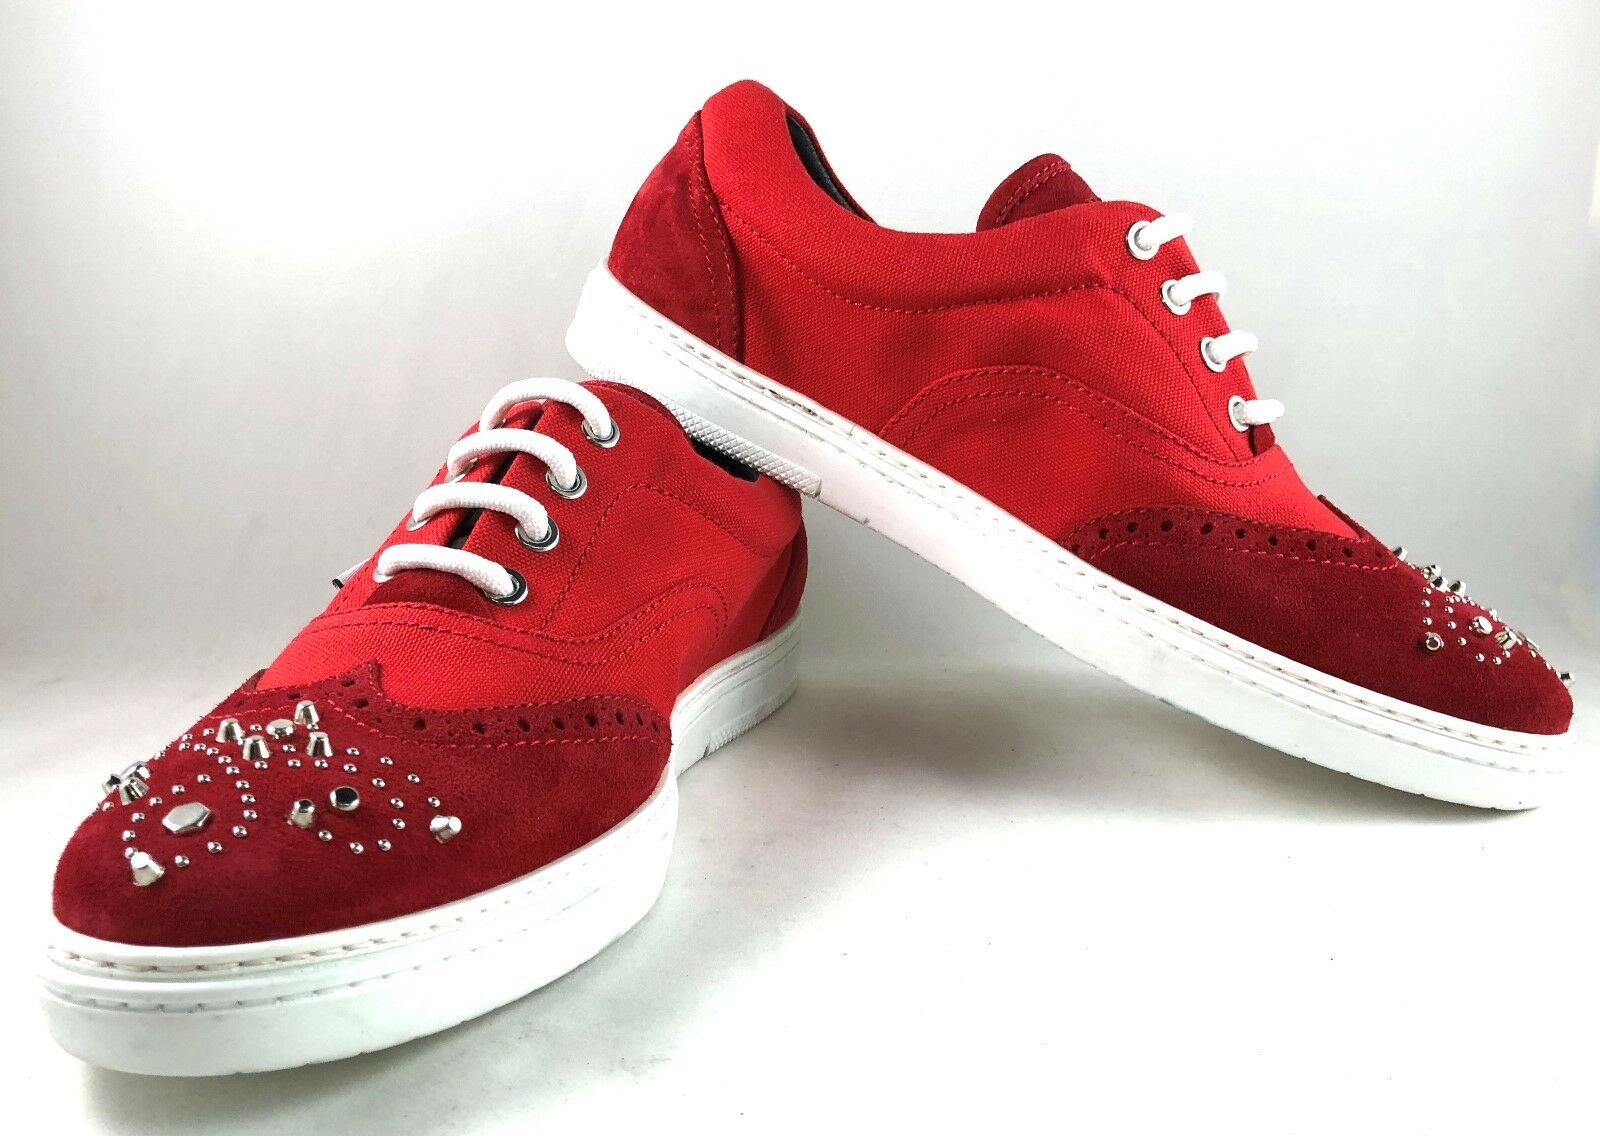 Jimmy Choo Lace Brian Red shoes sneakers w/ studs size 43